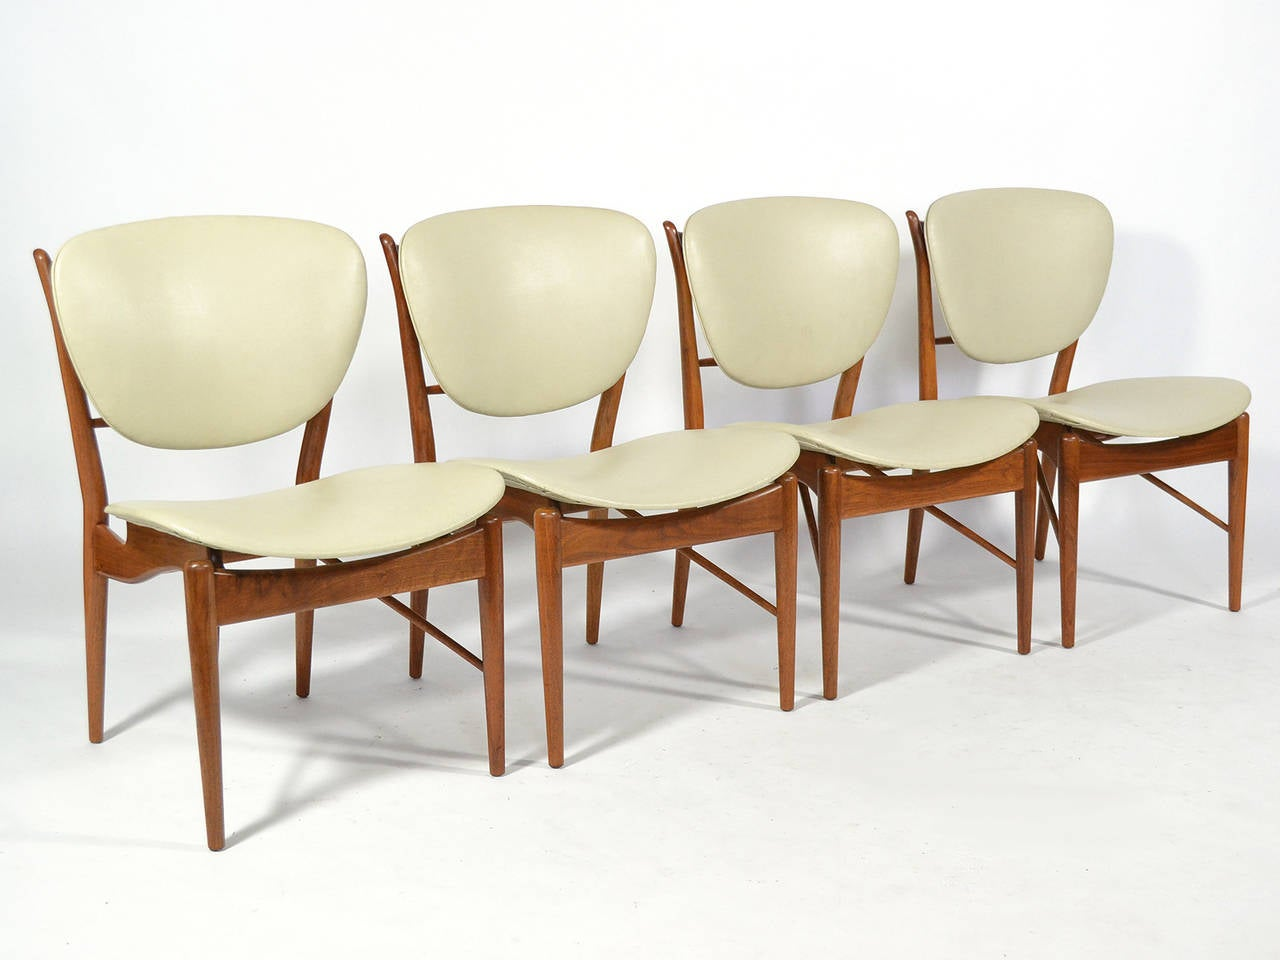 This exquisite dining set by Finn Juhl was designed in 1951 and is Classic Juhl. The sculptural frames of the model FJ 51 chairs support the curved seats and backs giving them the appearance of floating. This separation of the bearing and borne